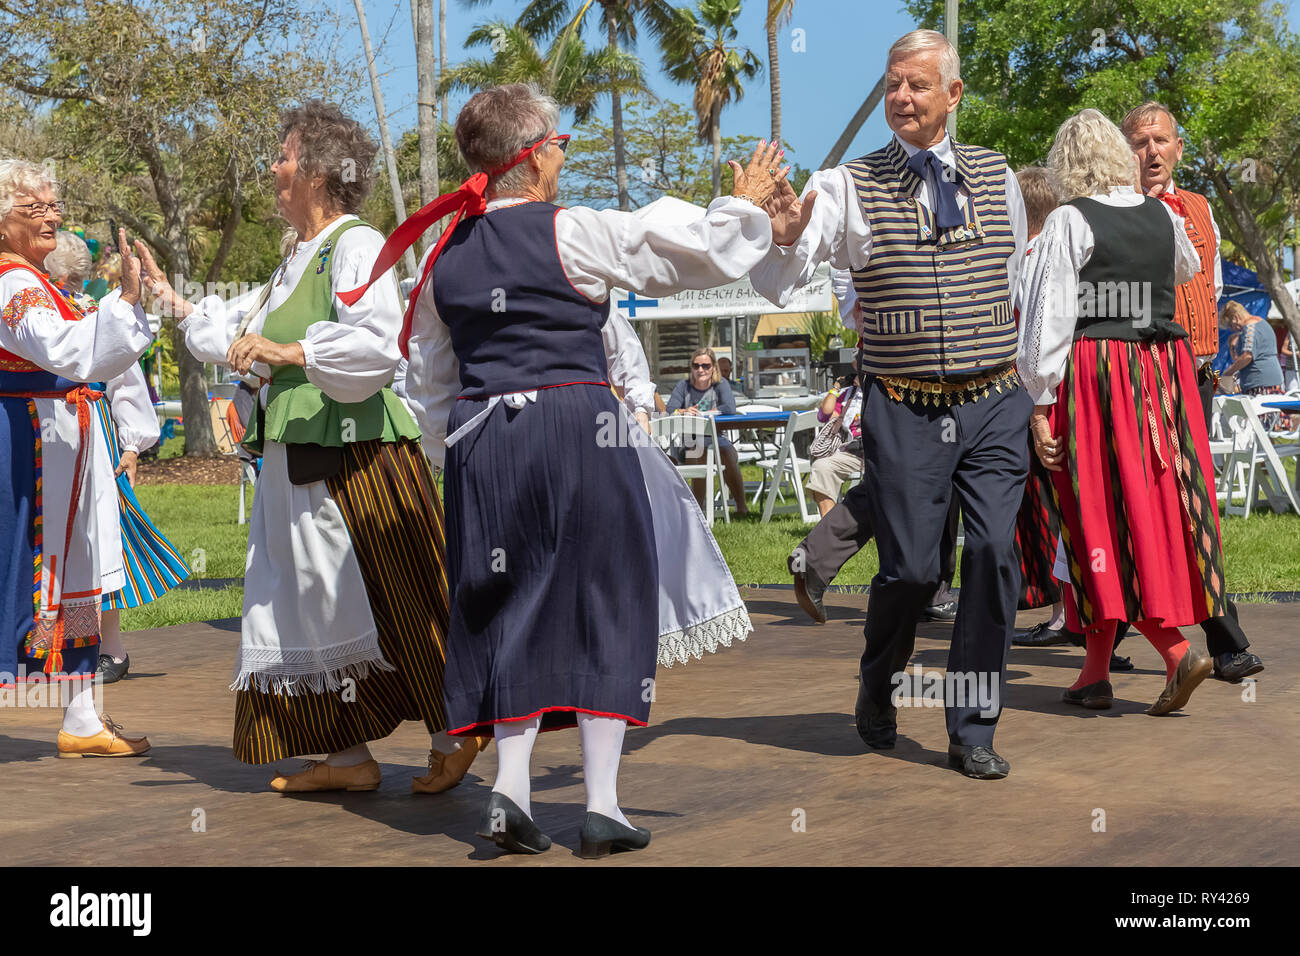 Lake Worth, Florida, USA March 3, 2019,​ Midnight Sun Festival Celebrating Finnish Culture. The couples go round and round each other while dancing. - Stock Image